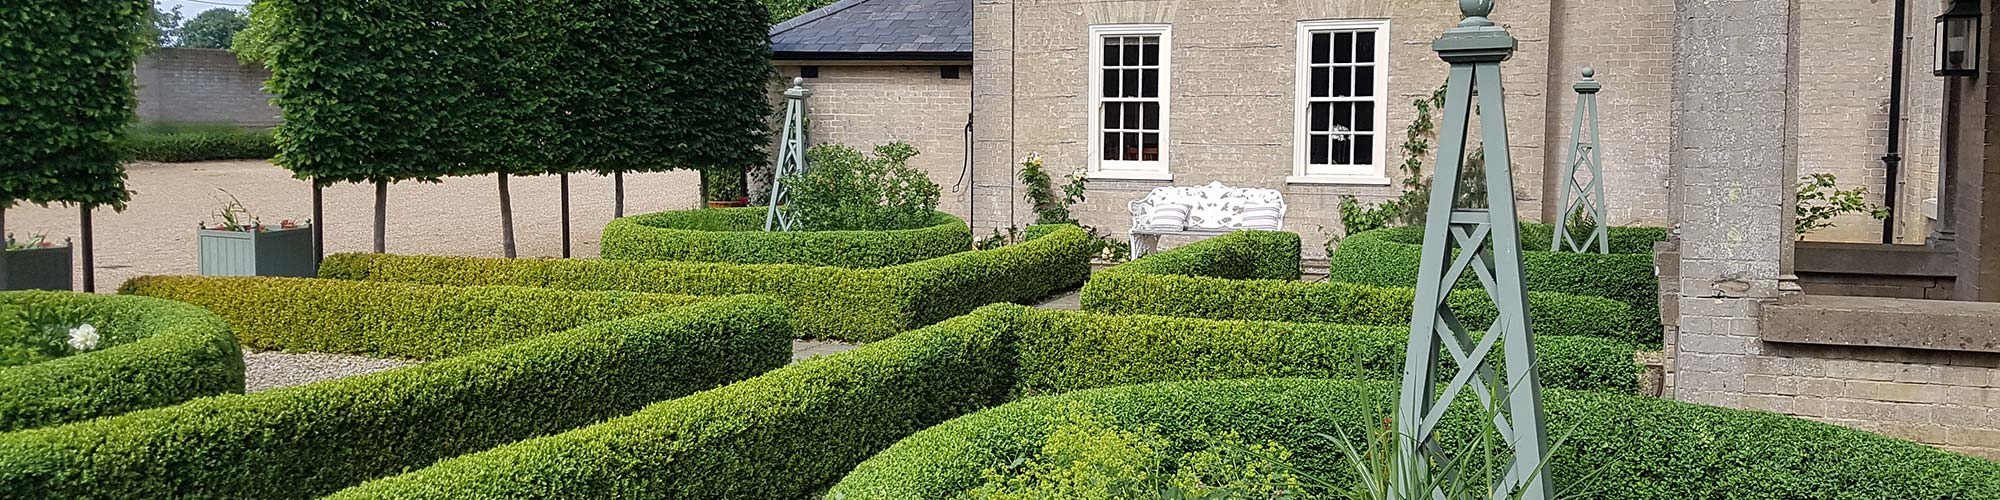 Garden and Landscaping services Essex, Suffolk and Hertfordshire